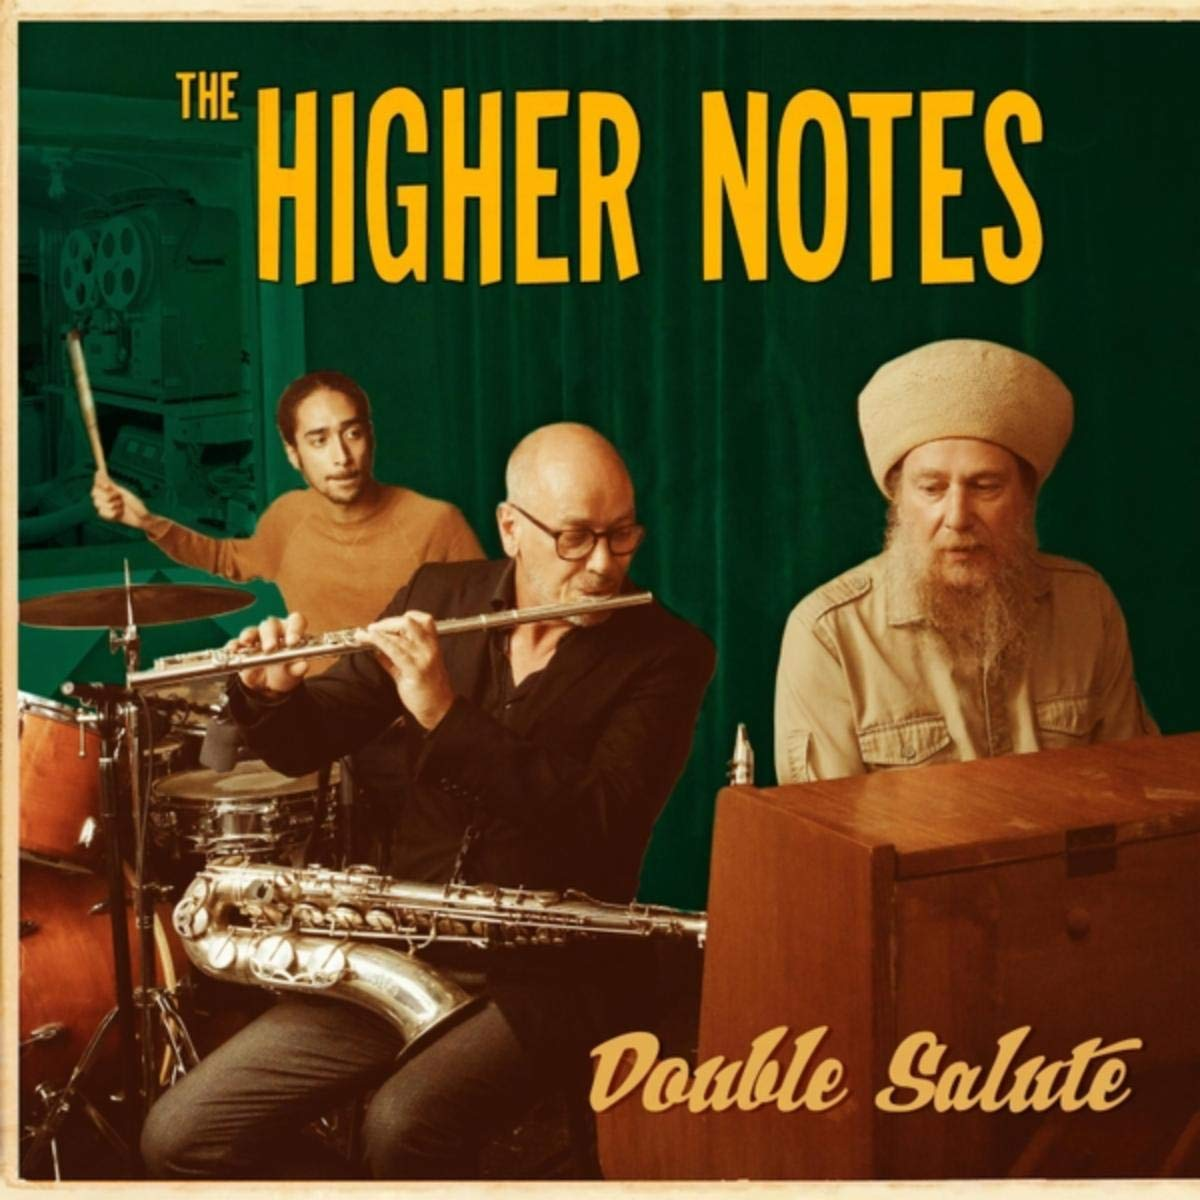 The Higher Notes - Double Salute (2020) [FLAC] Download